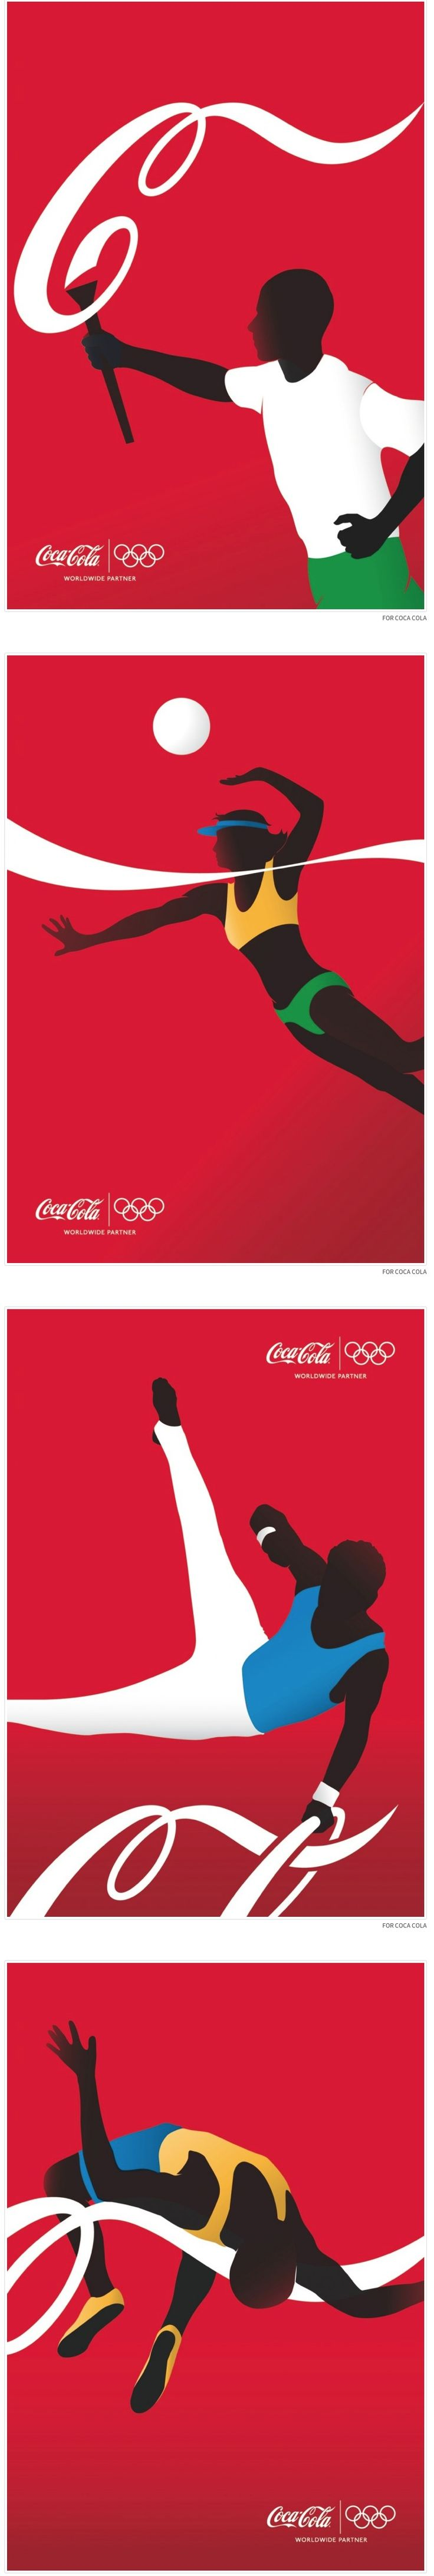 Creative COCA COLA Olympic Ads